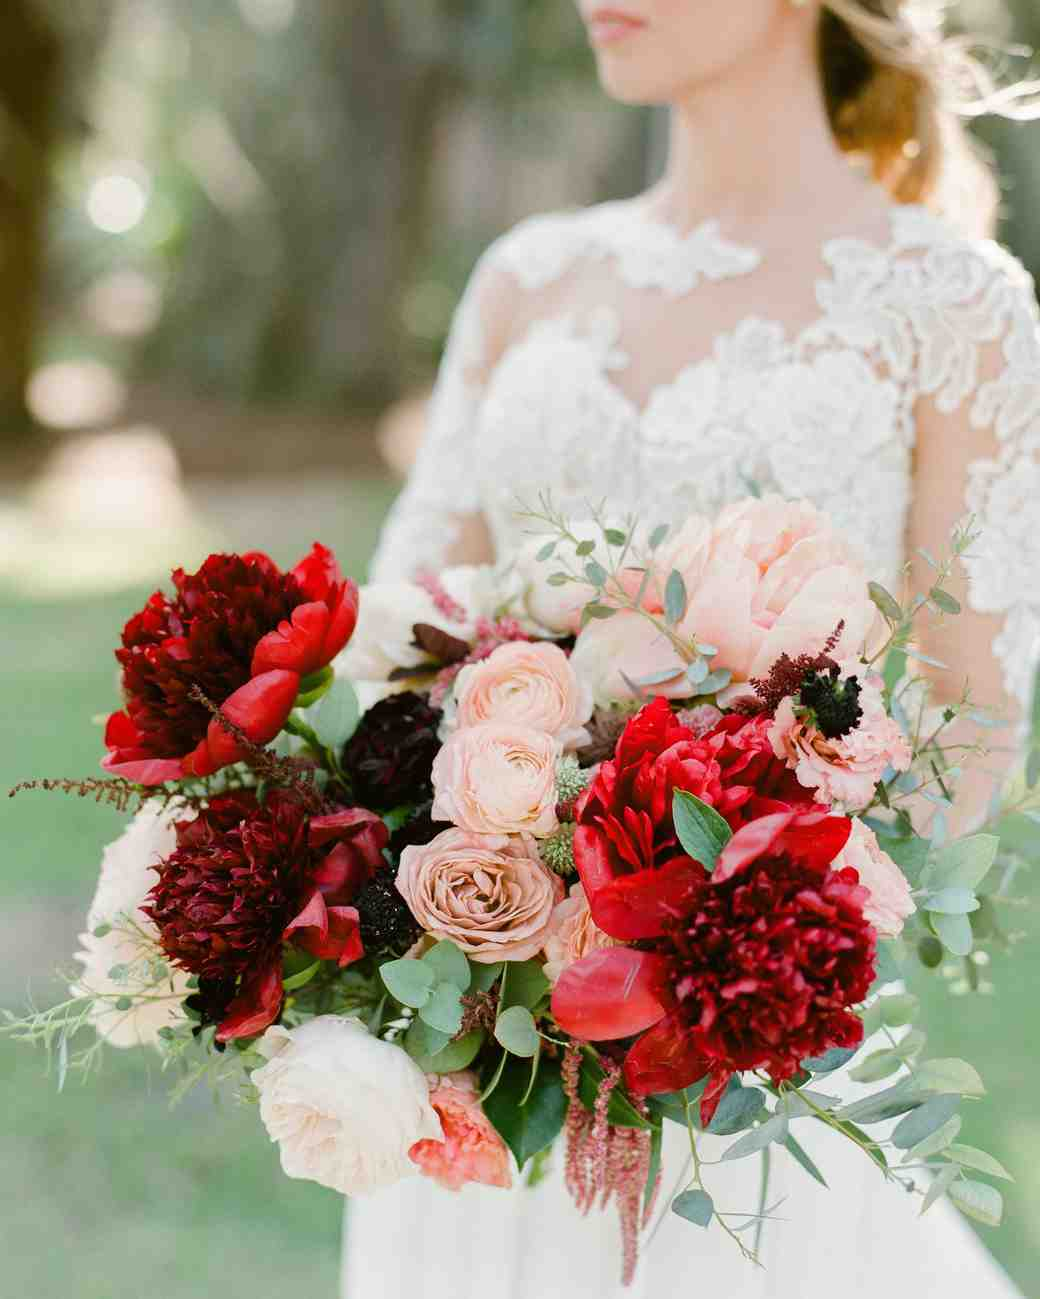 Wedding Bridal Flowers: 52 Gorgeous Fall Wedding Bouquets